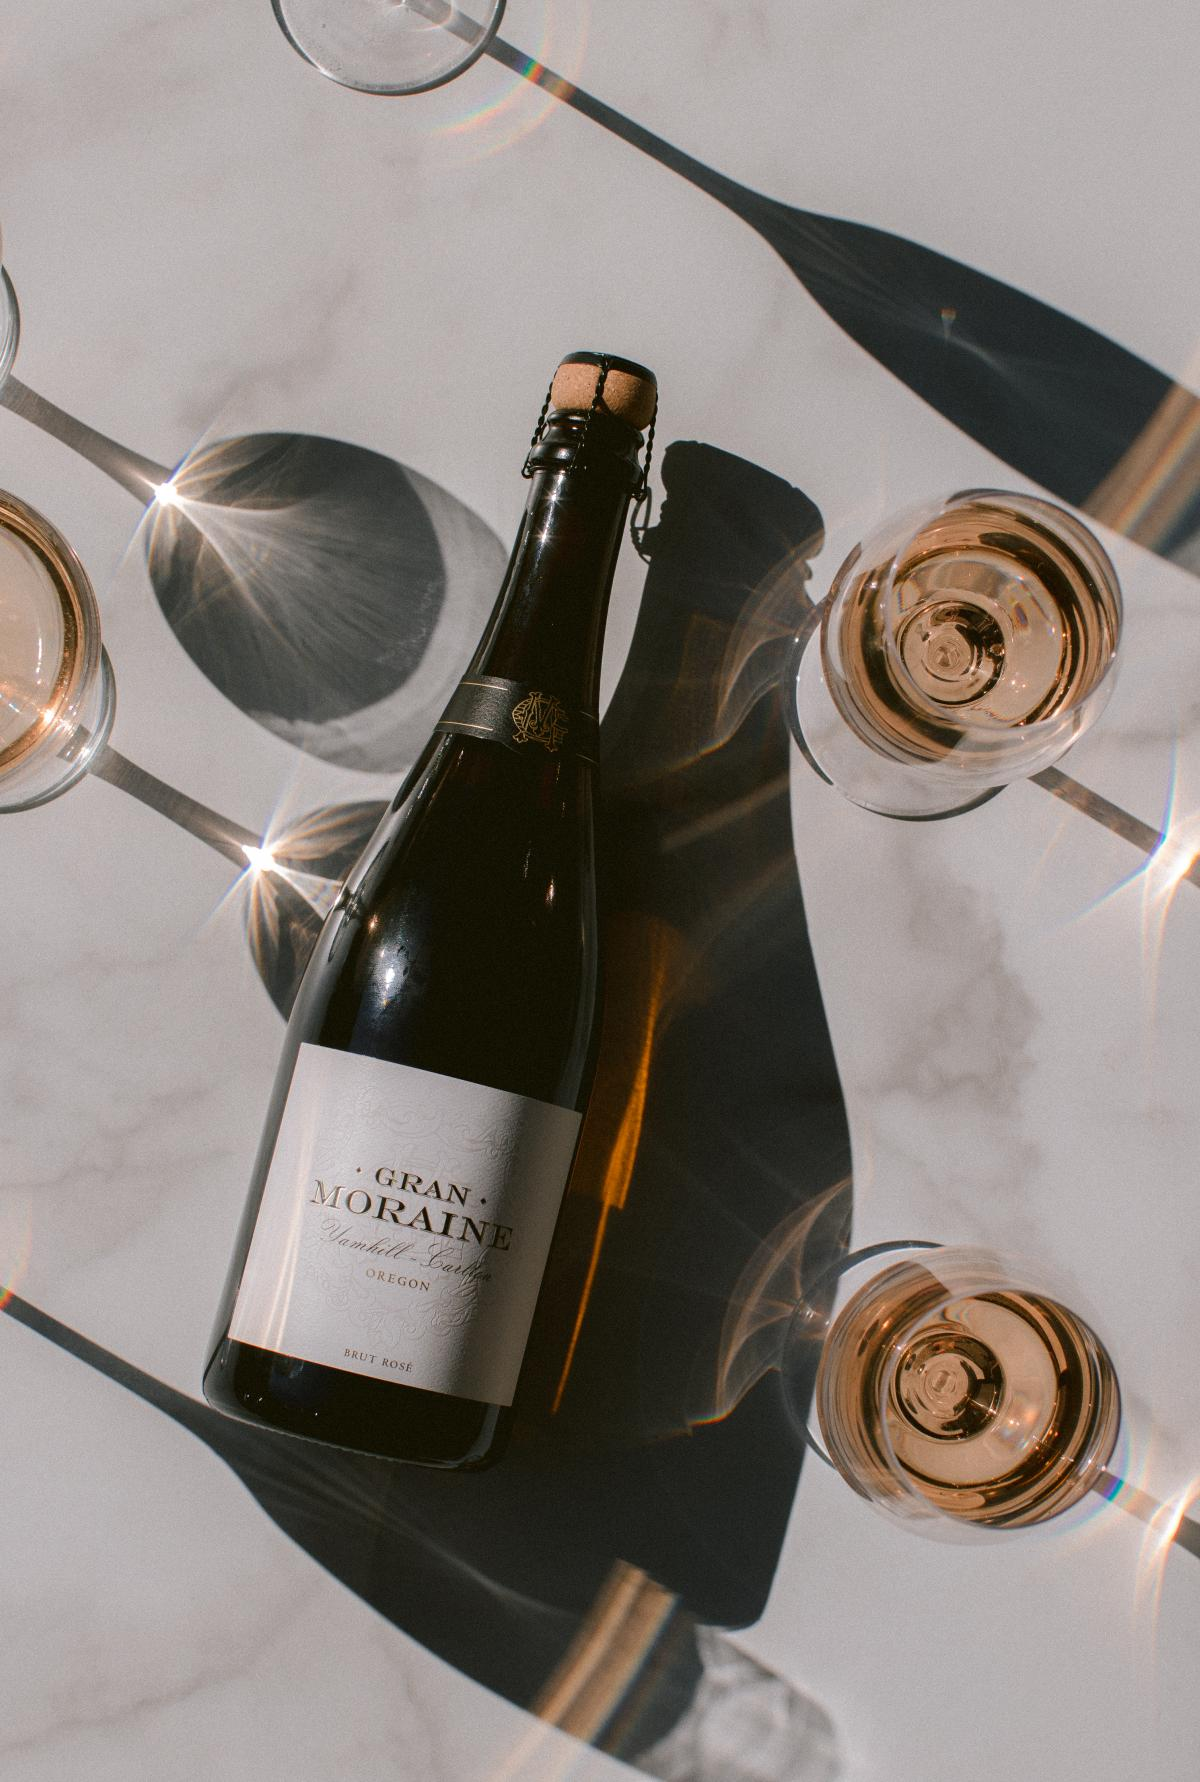 From above, a bottle of Brut Rosé laying on a table surrounded by wine glasses